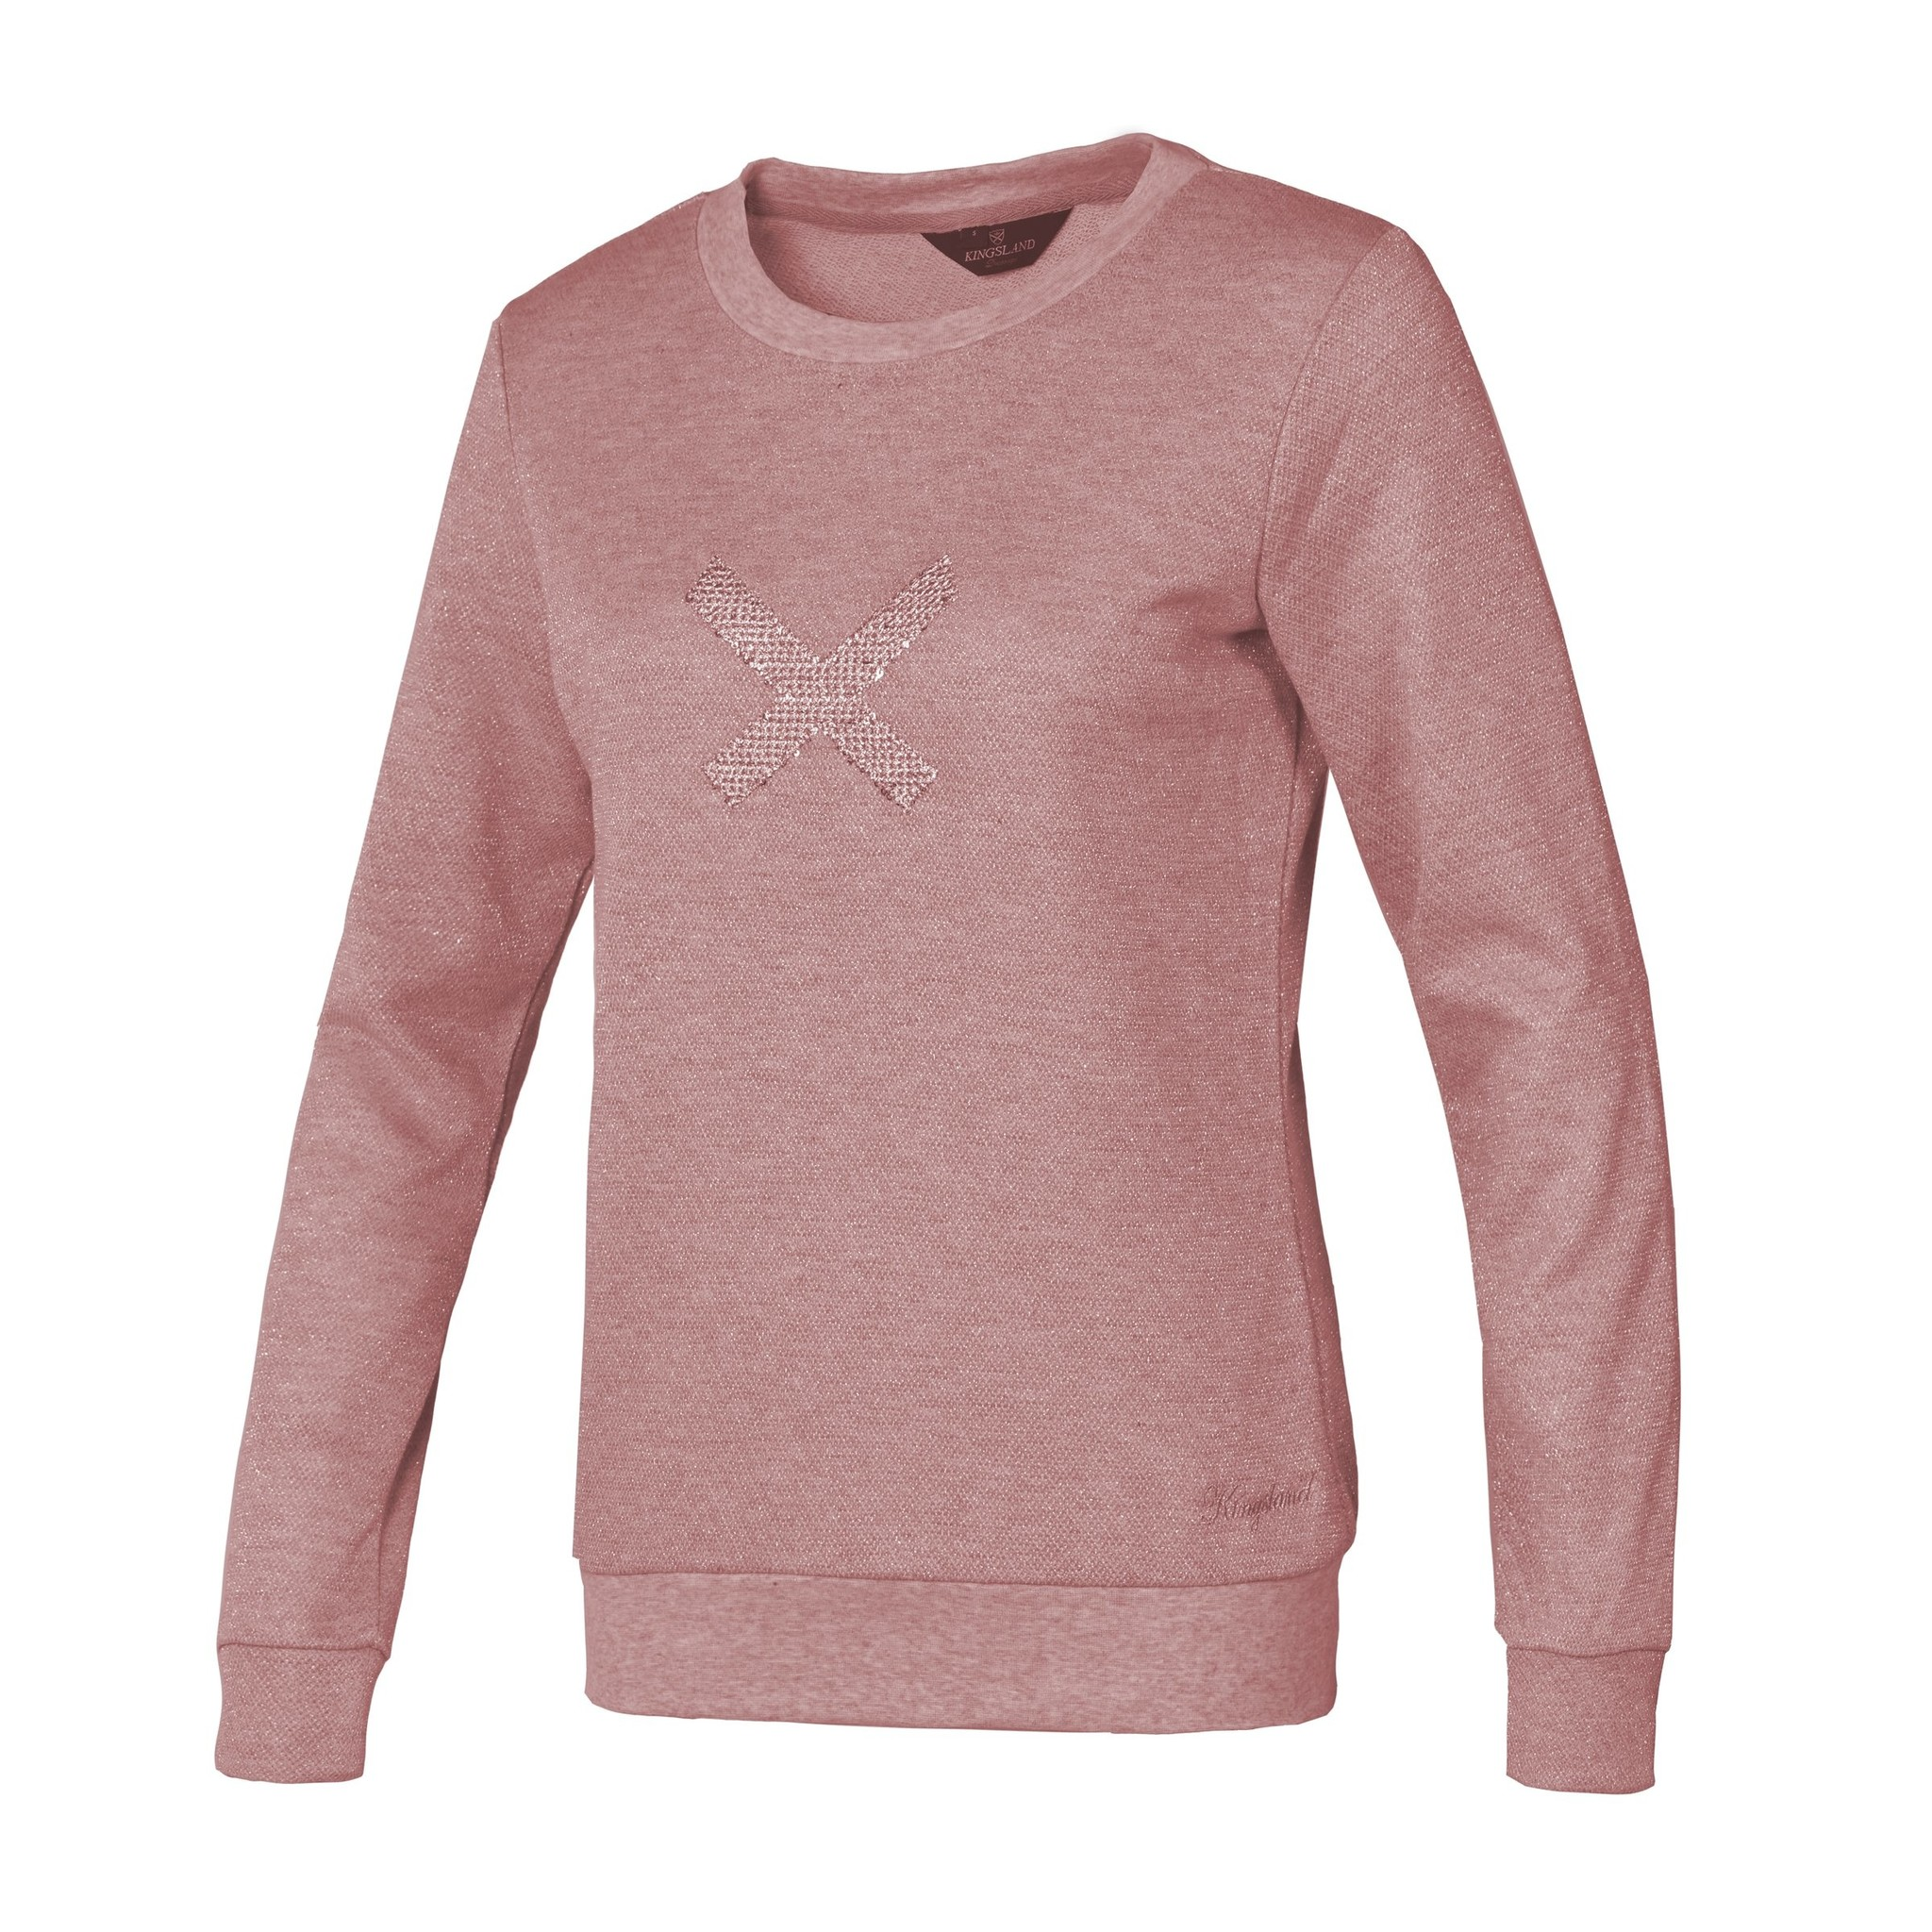 KINGSLAND KINGSLAND Leticia sweater